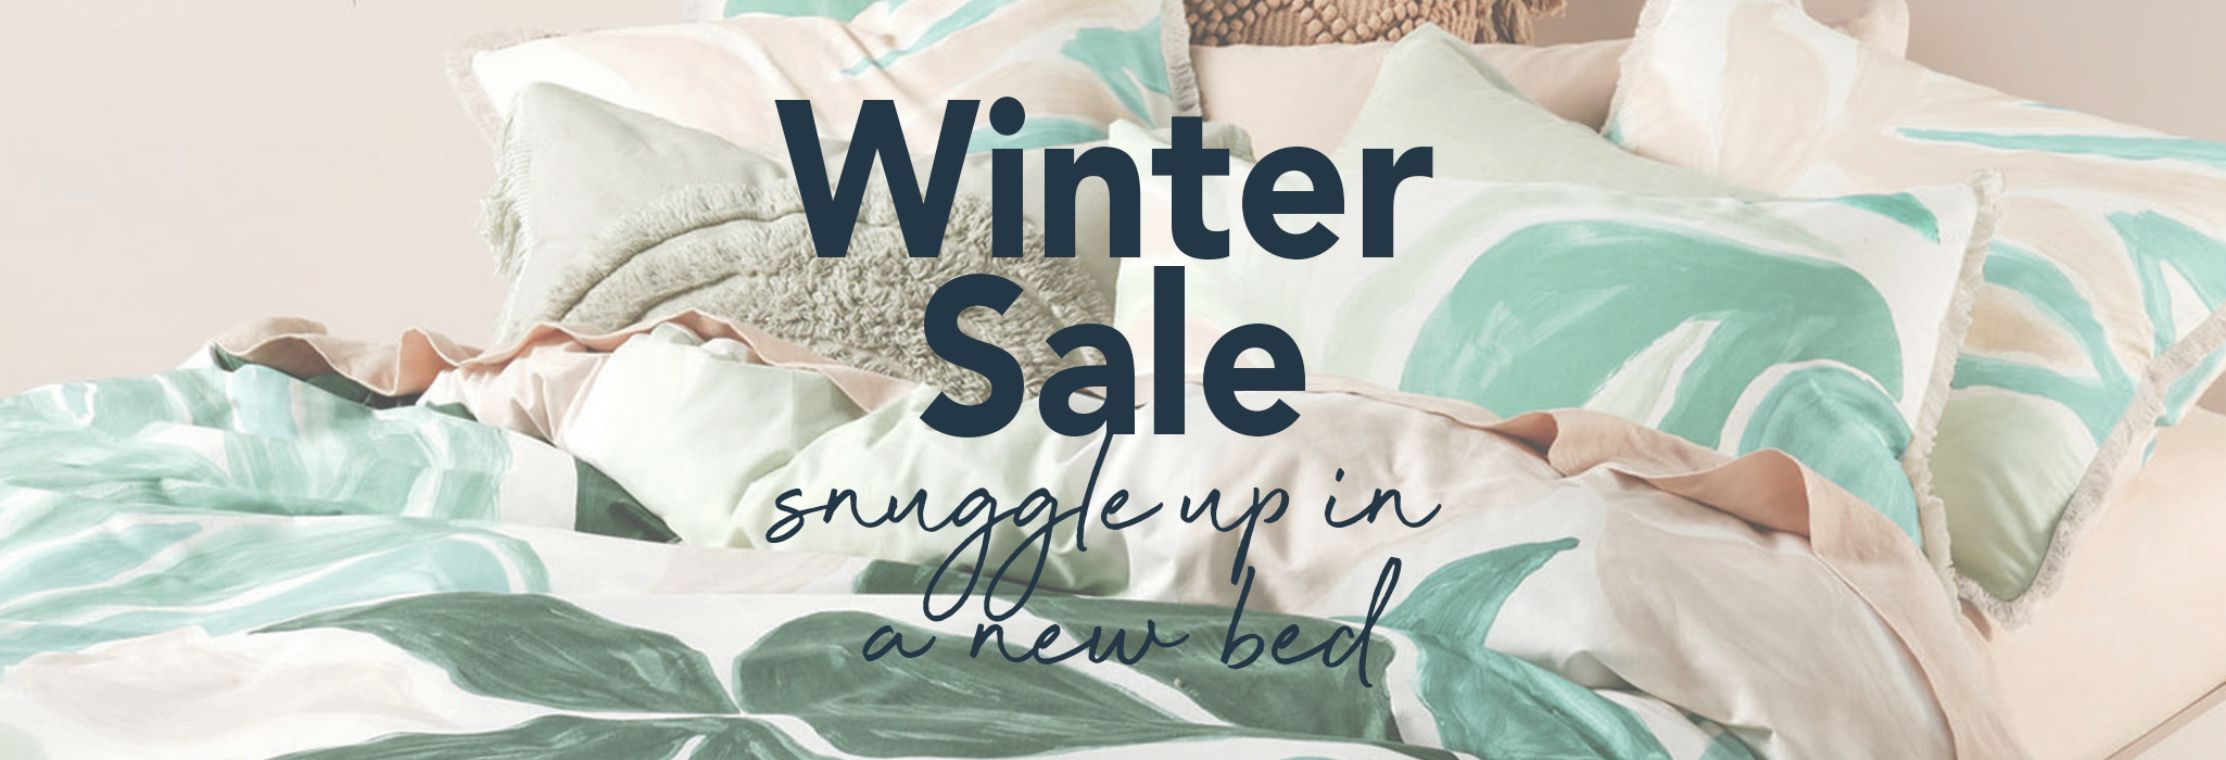 Best in Beds Winter Sale Now On Snuggle up in a new bed